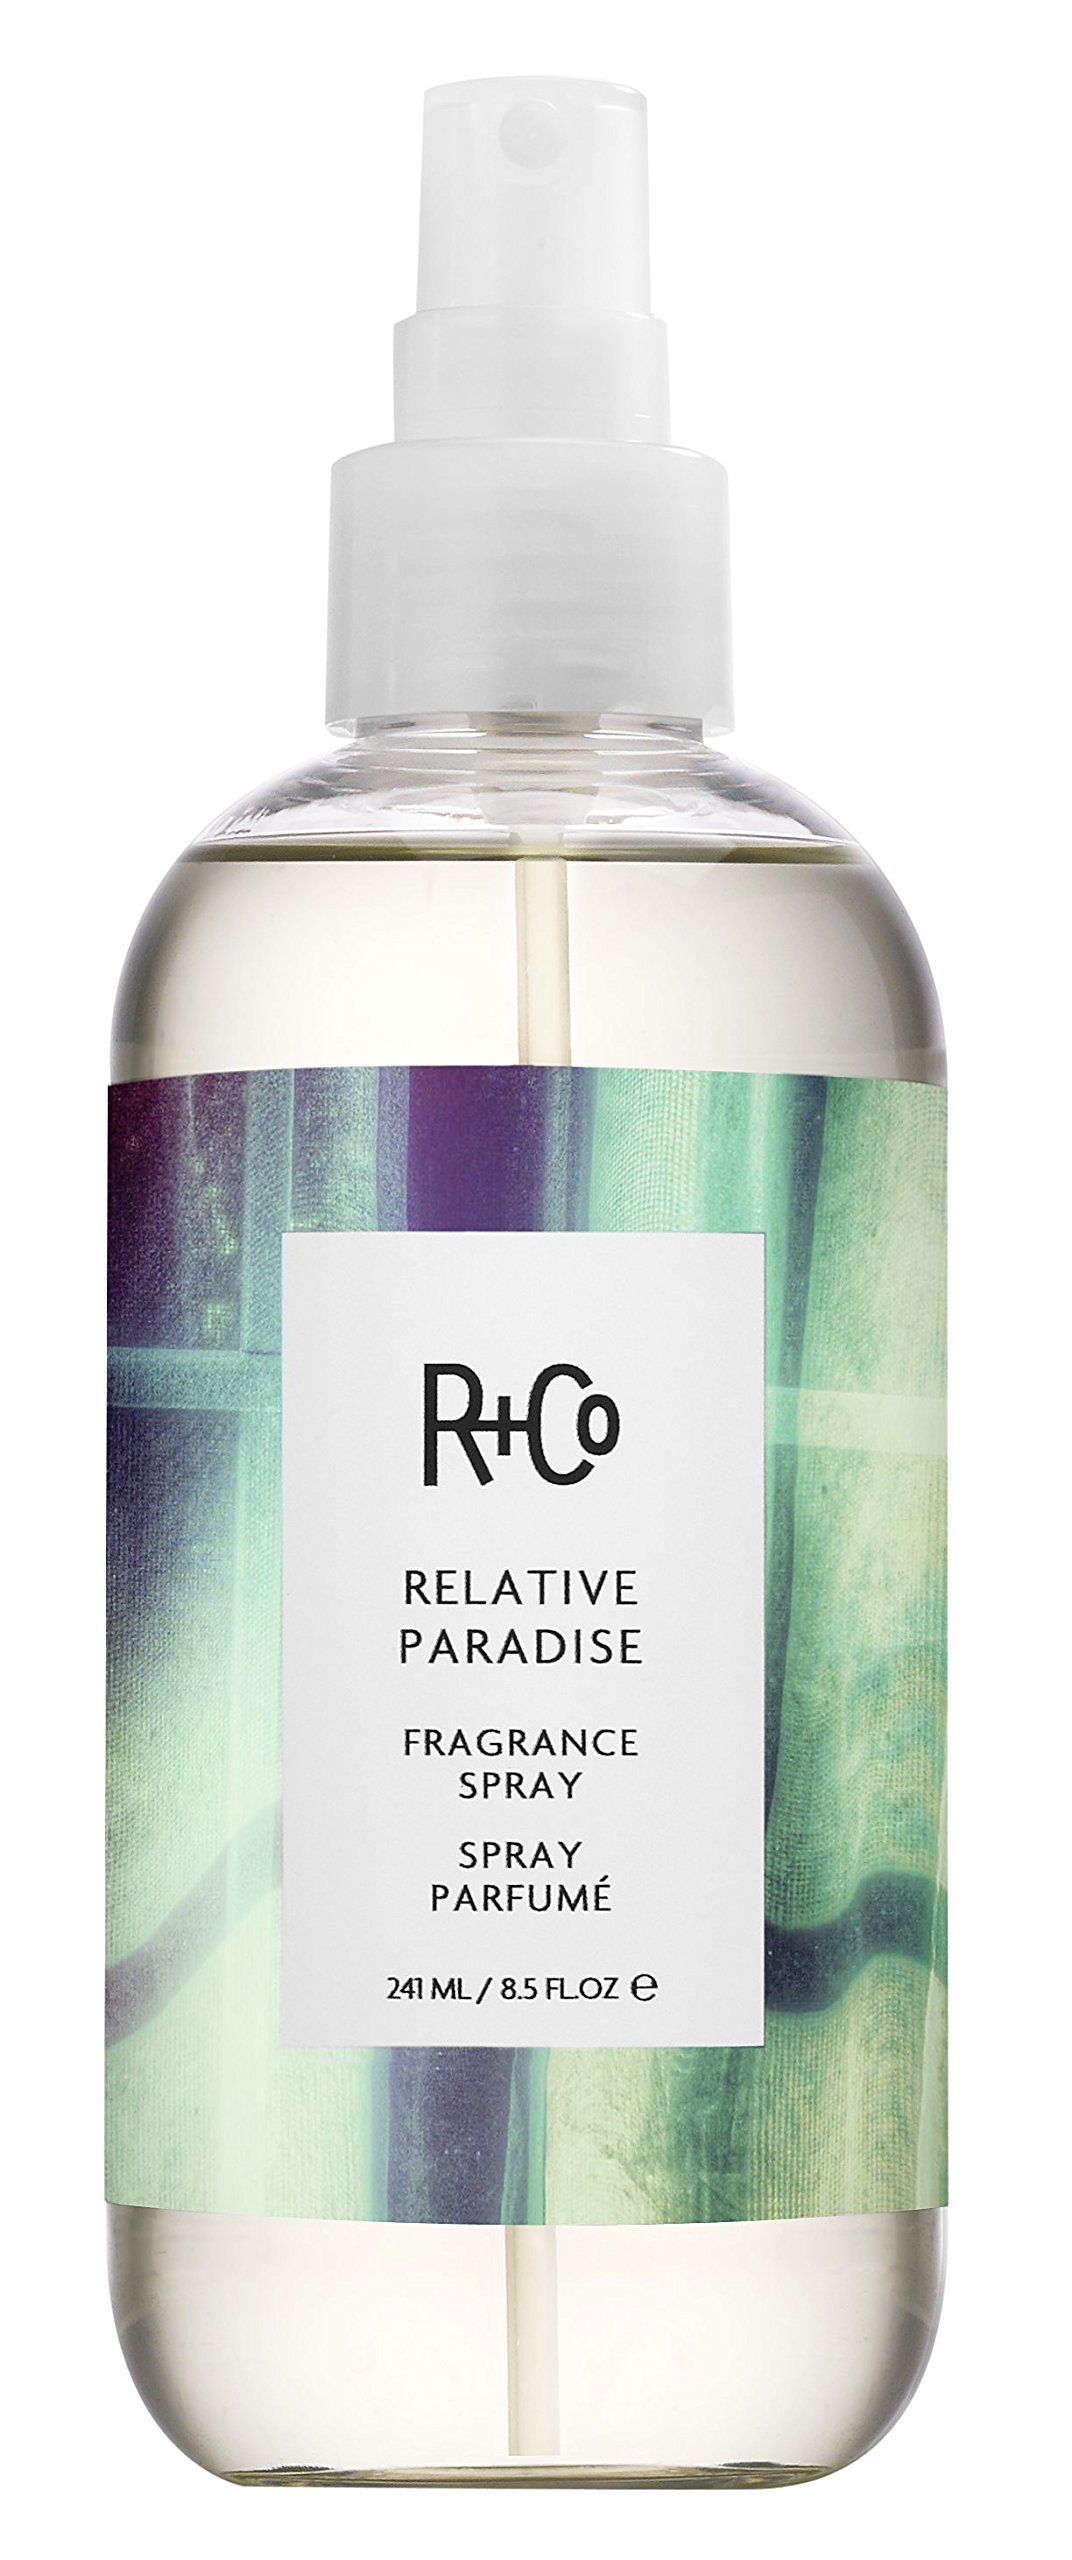 R+Co Relative Paradise Fragrance Spray, 8.5 Ounces